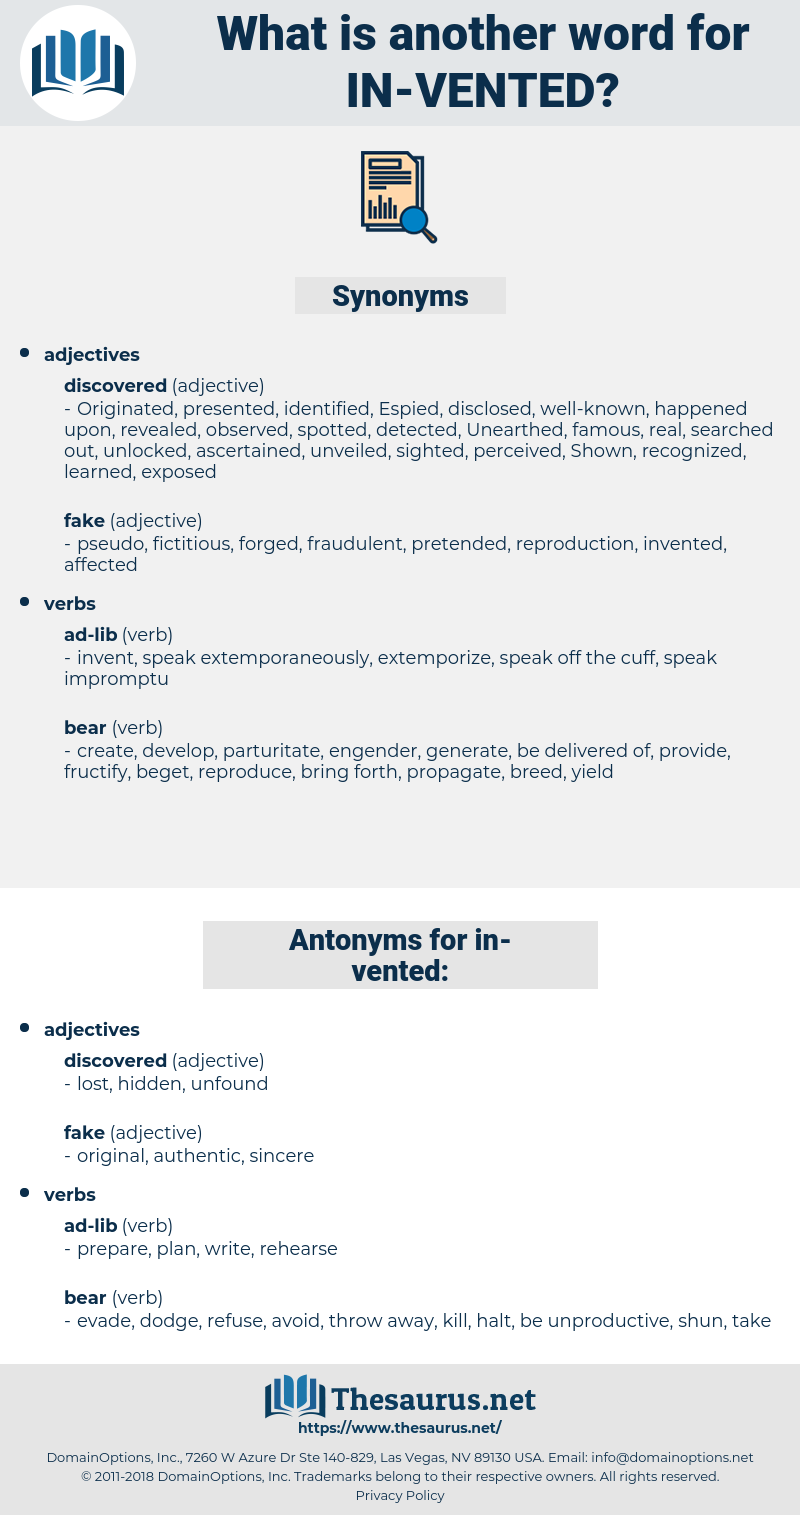 in-vented, synonym in-vented, another word for in-vented, words like in-vented, thesaurus in-vented